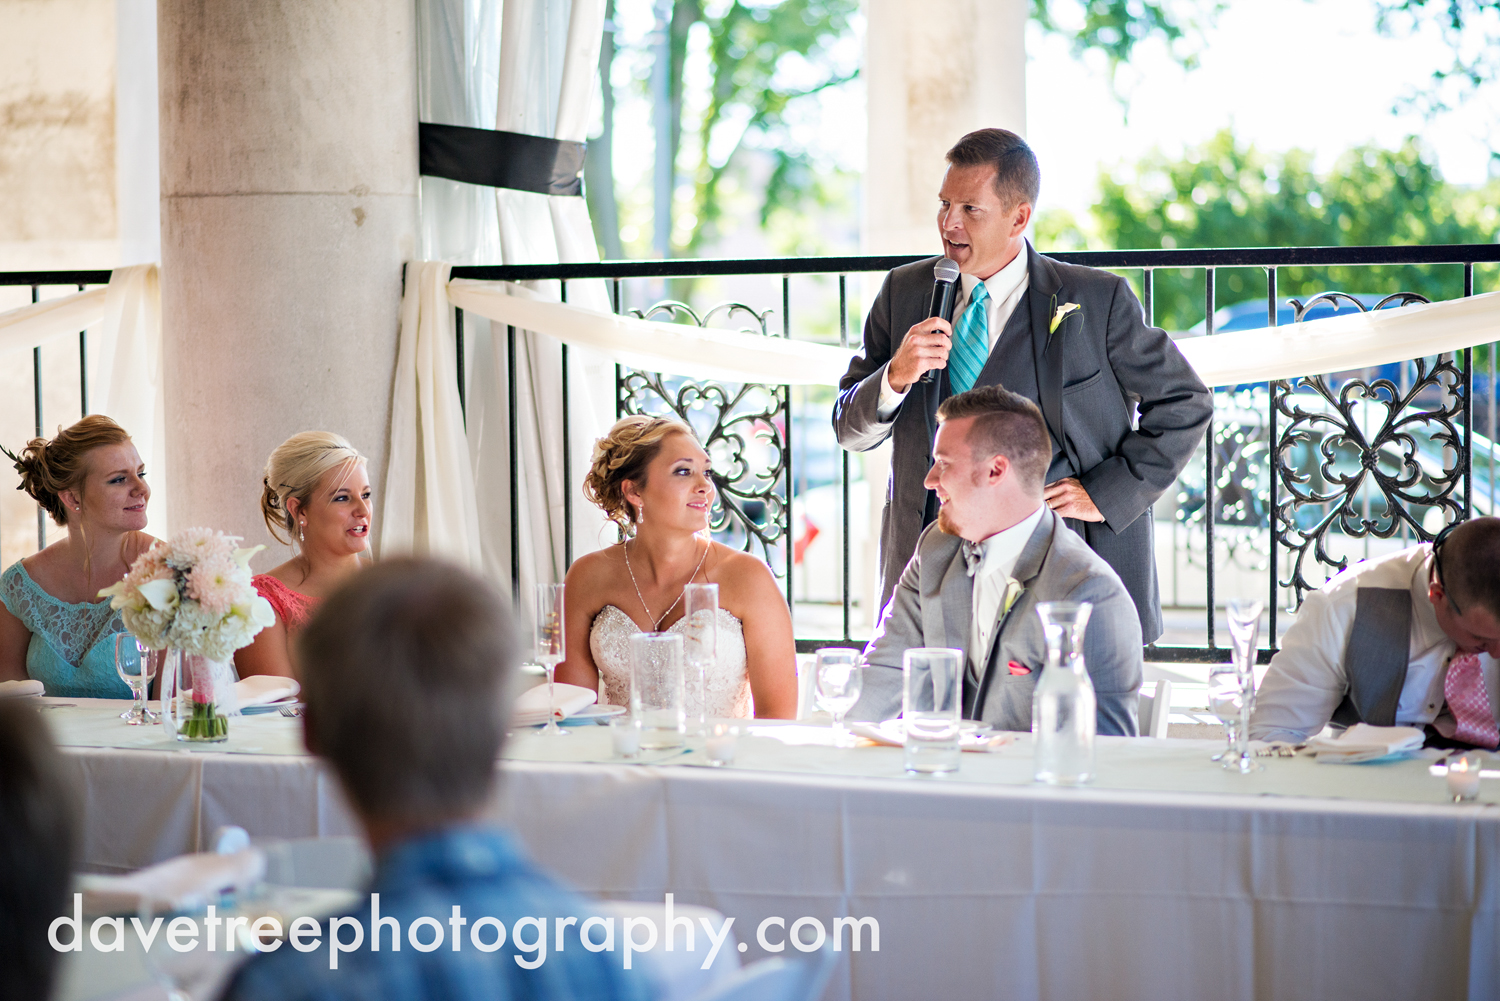 veranda_wedding_photographer_st_joseph_wedding_114.jpg